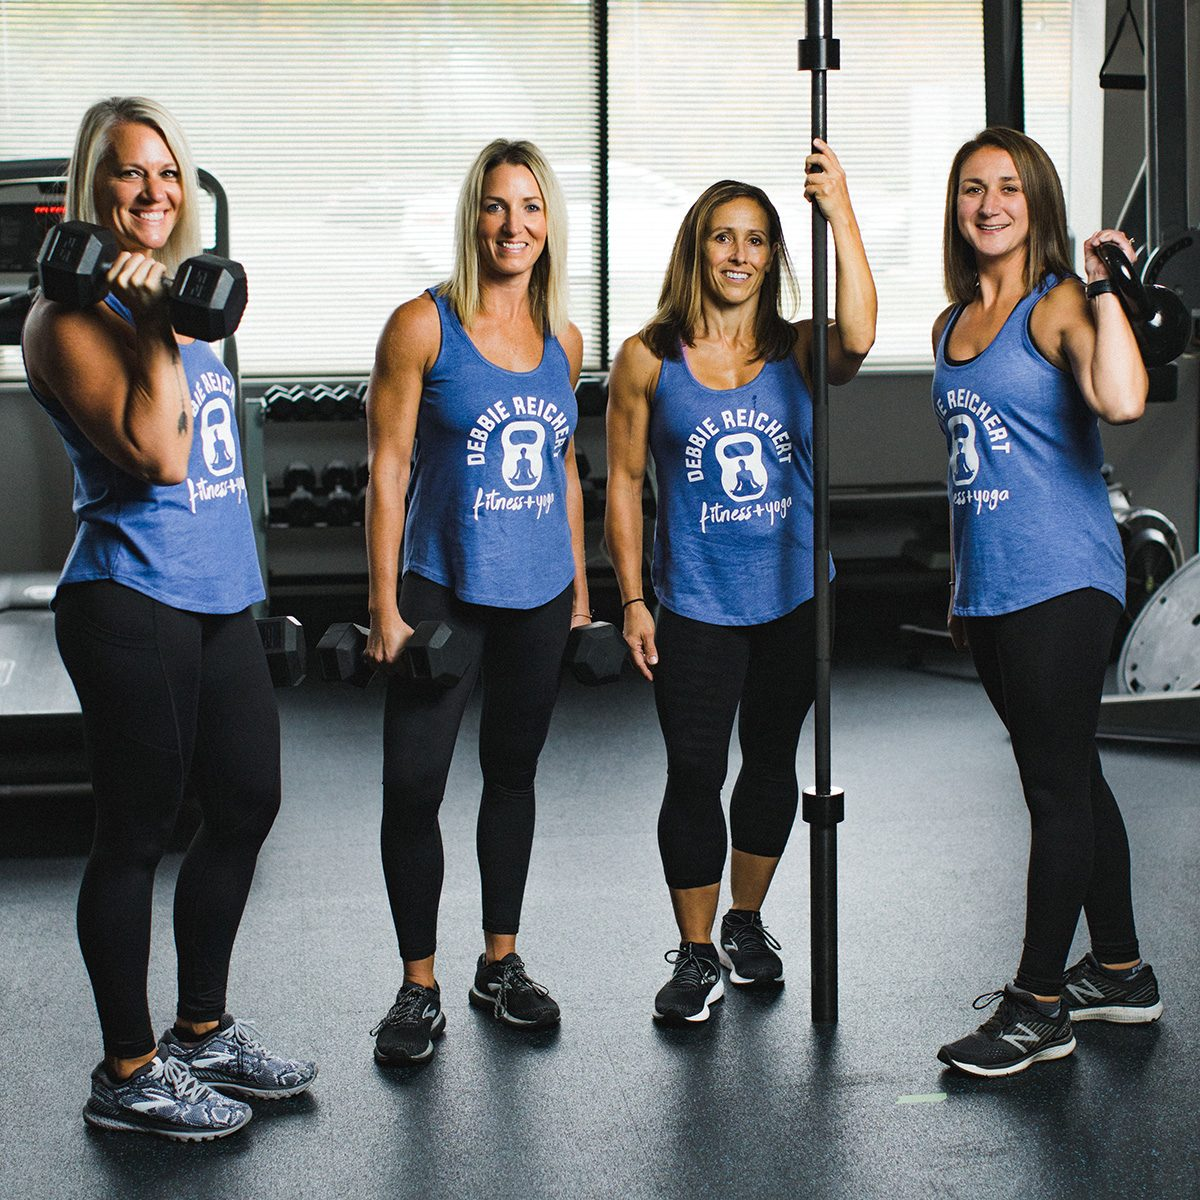 Personal Training and Small Group Training with Debbie Reichert